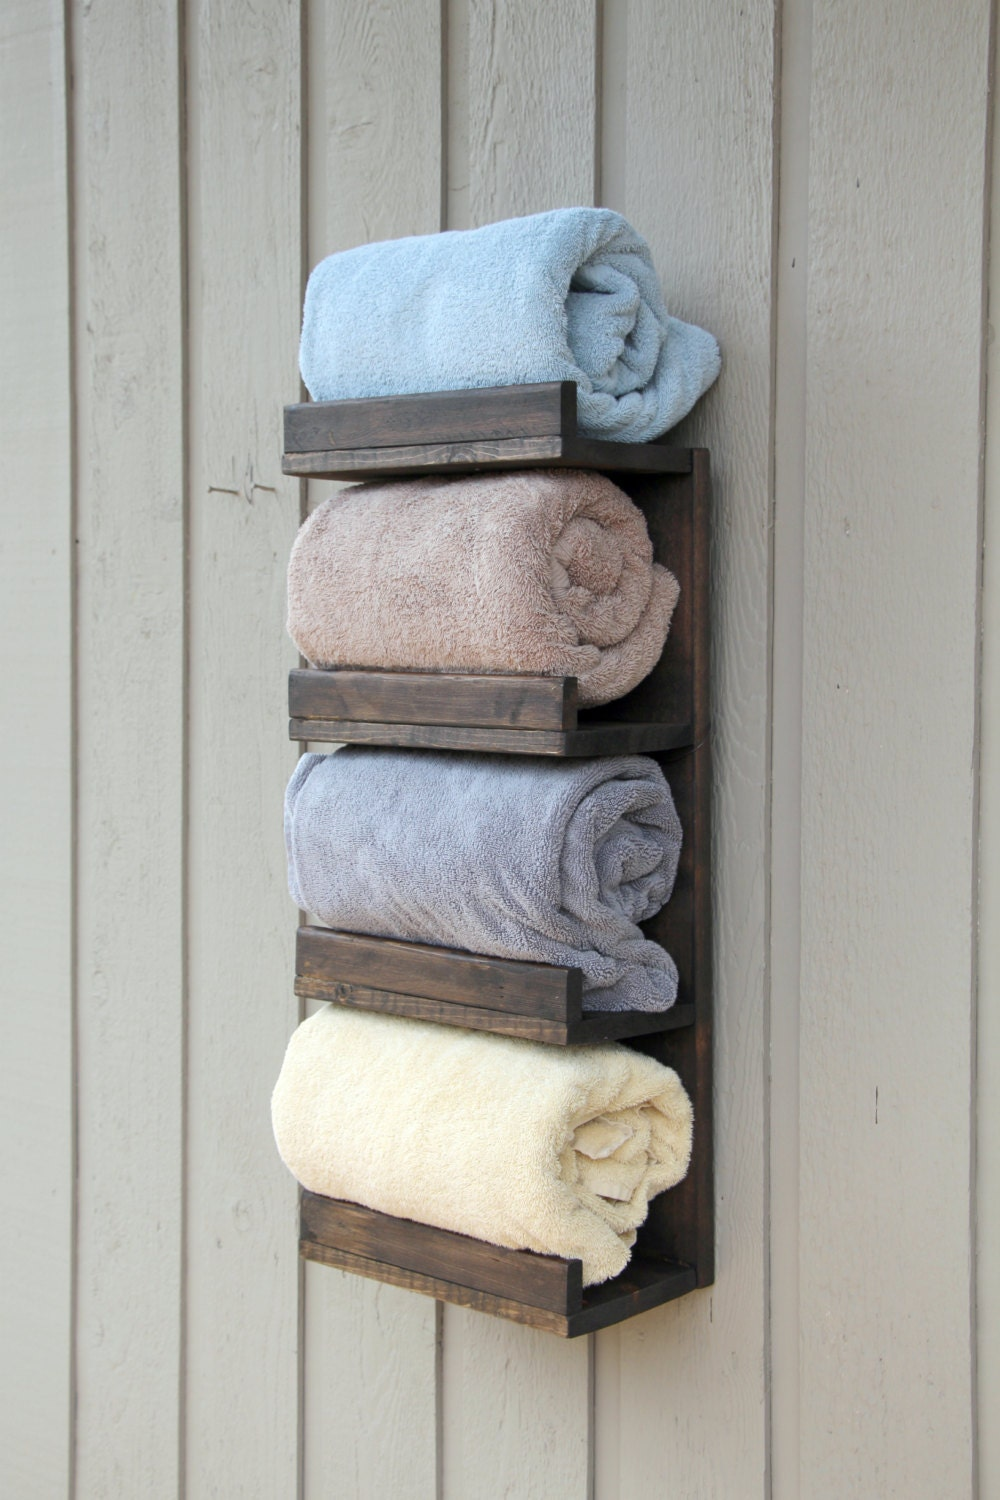 Bathroom towel rack 4 tier bath storage everyday towel rack for Bathroom towel storage